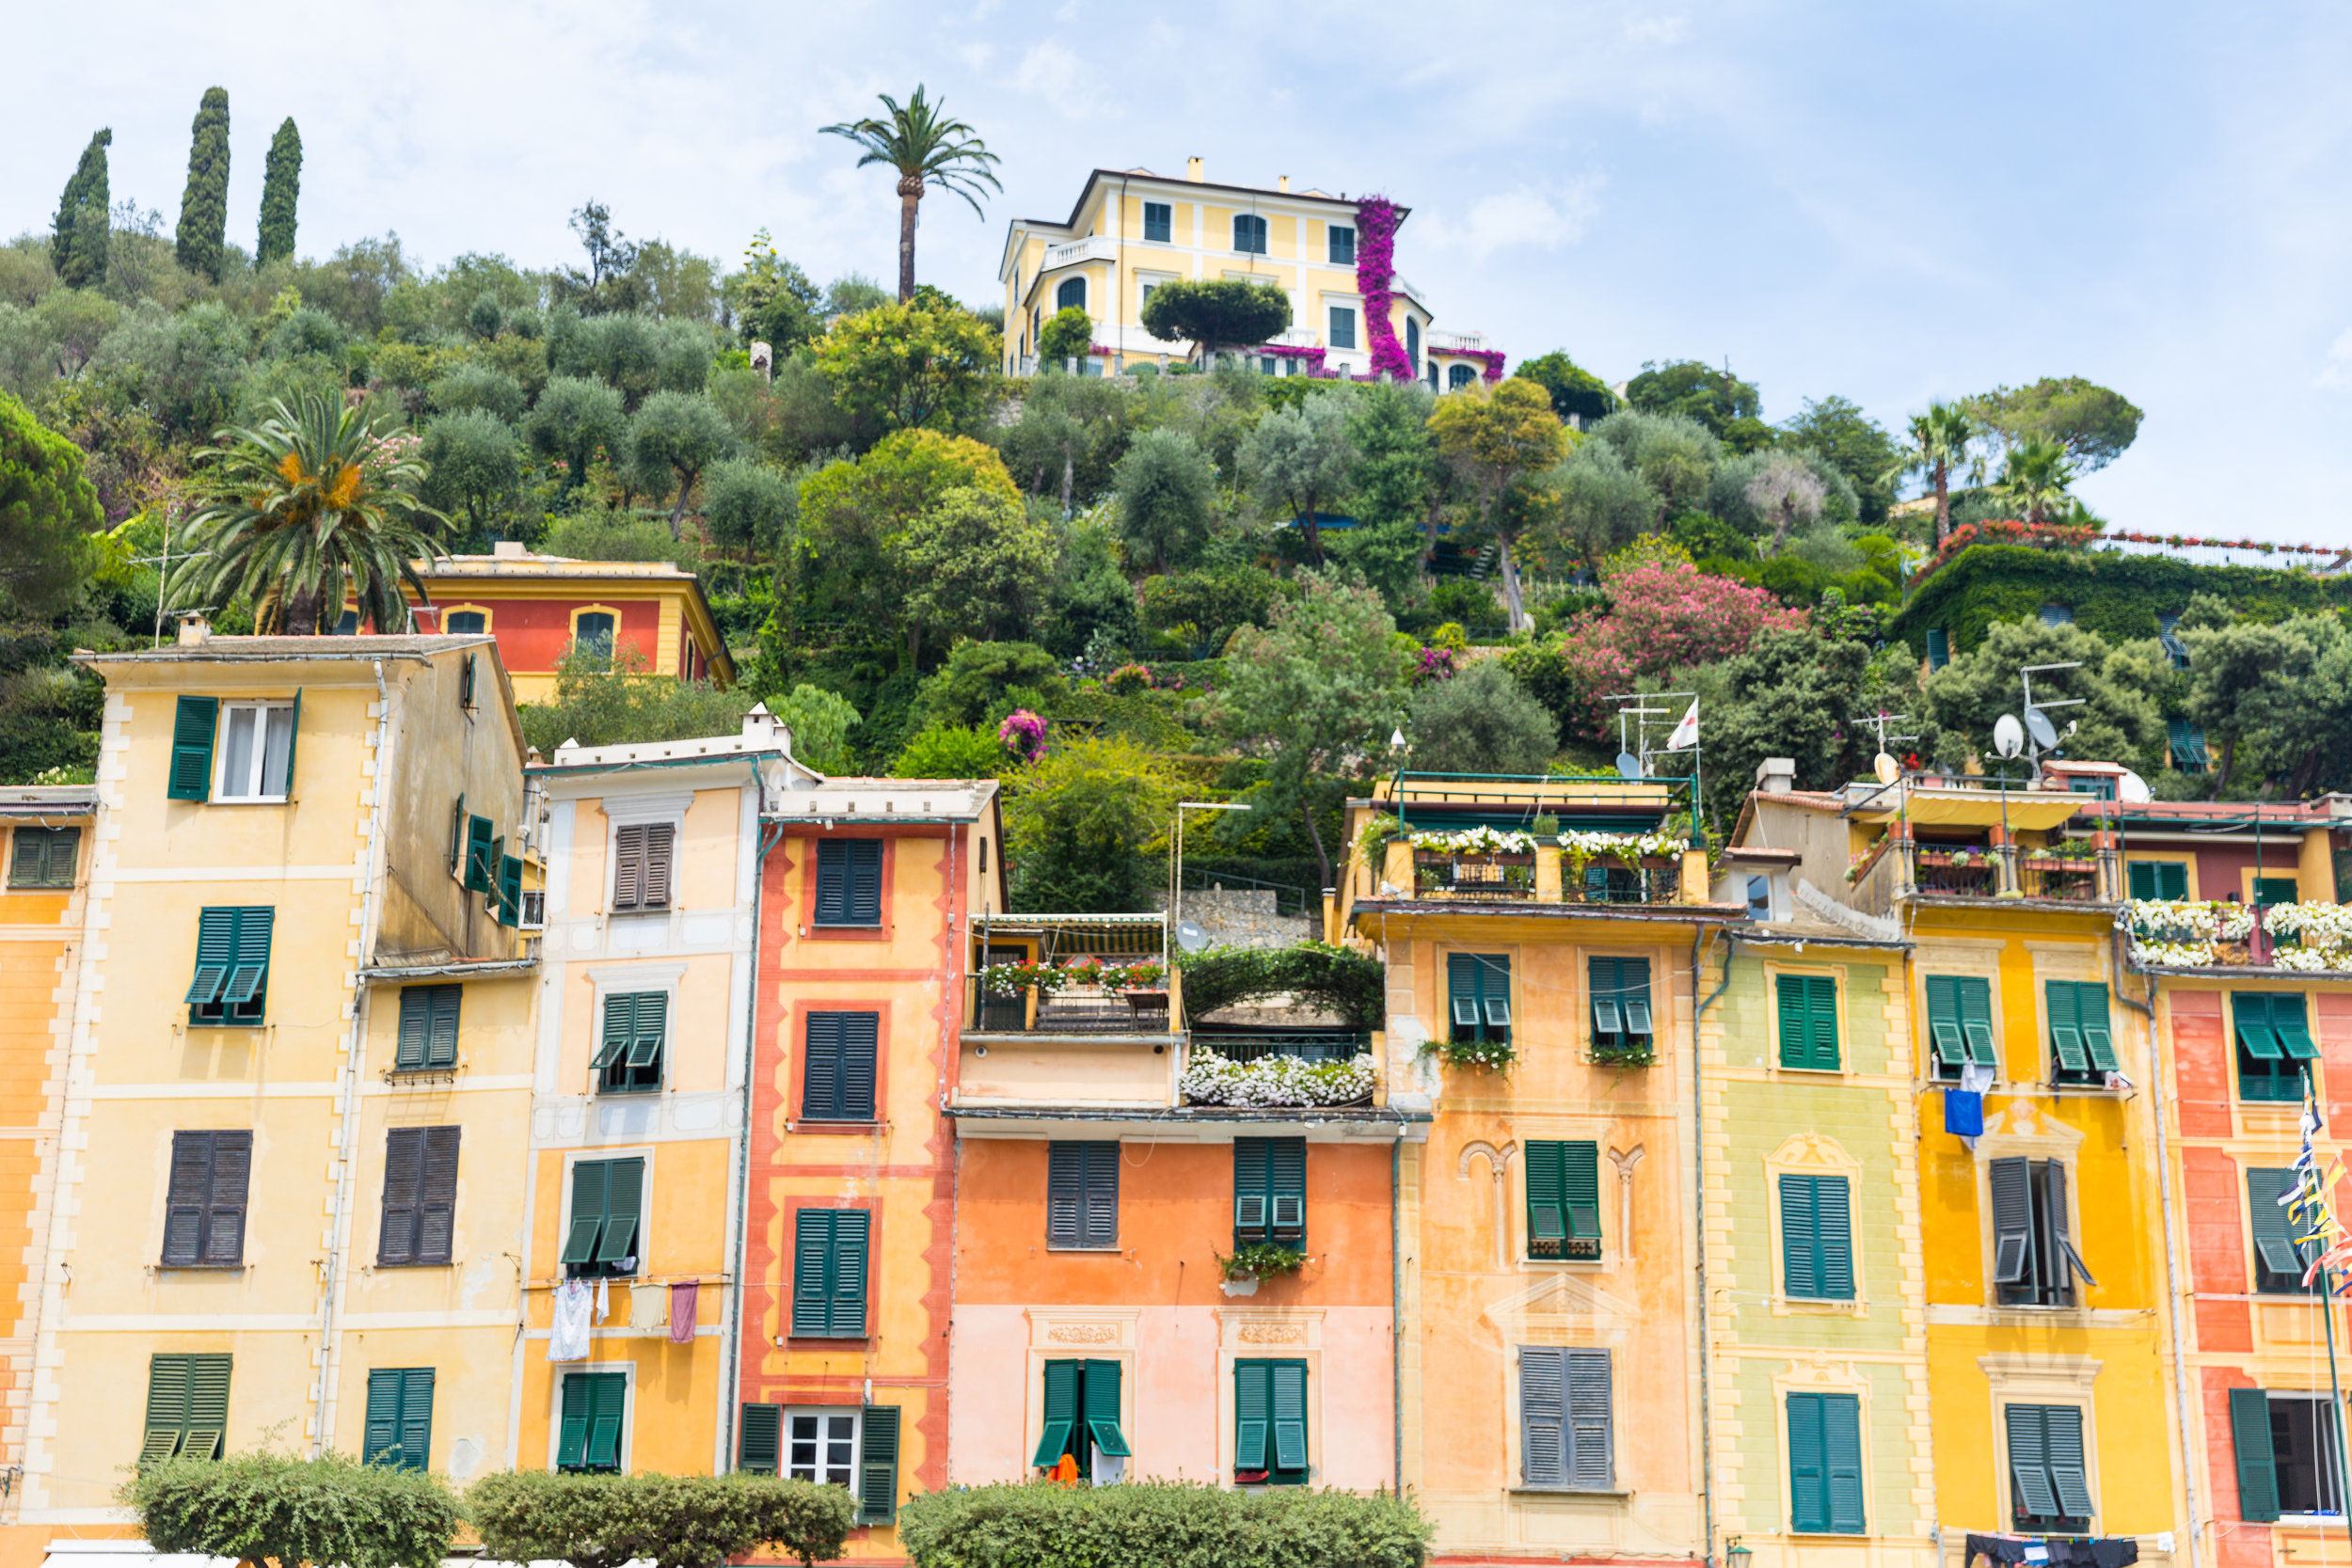 Italy Liguria Portofino Summer Travel-3.jpg